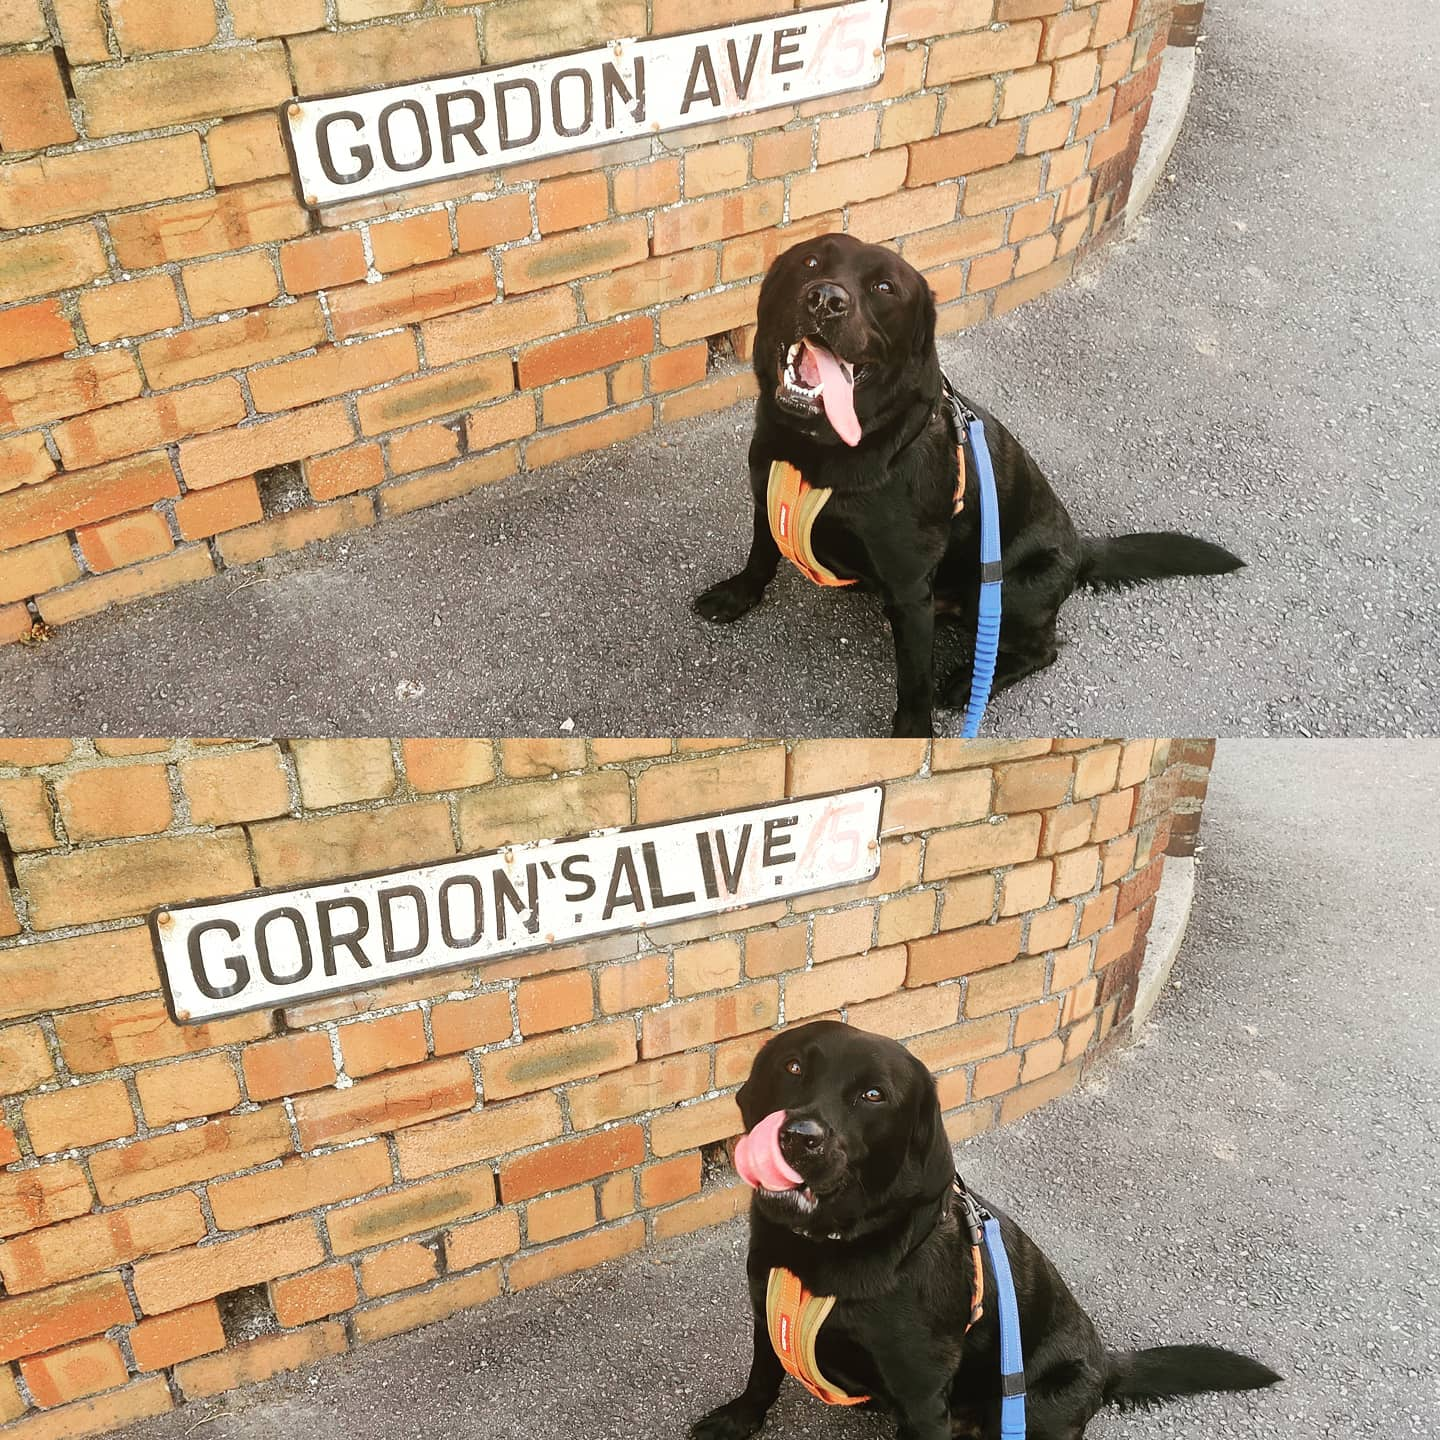 Anyone know where to get custom street name signs made up? While out walking with #larrybstanding the other night he pointed out the one at the top of our road could easily be made 1000% more awesome. #cleverdog #divehawkmen #blessed